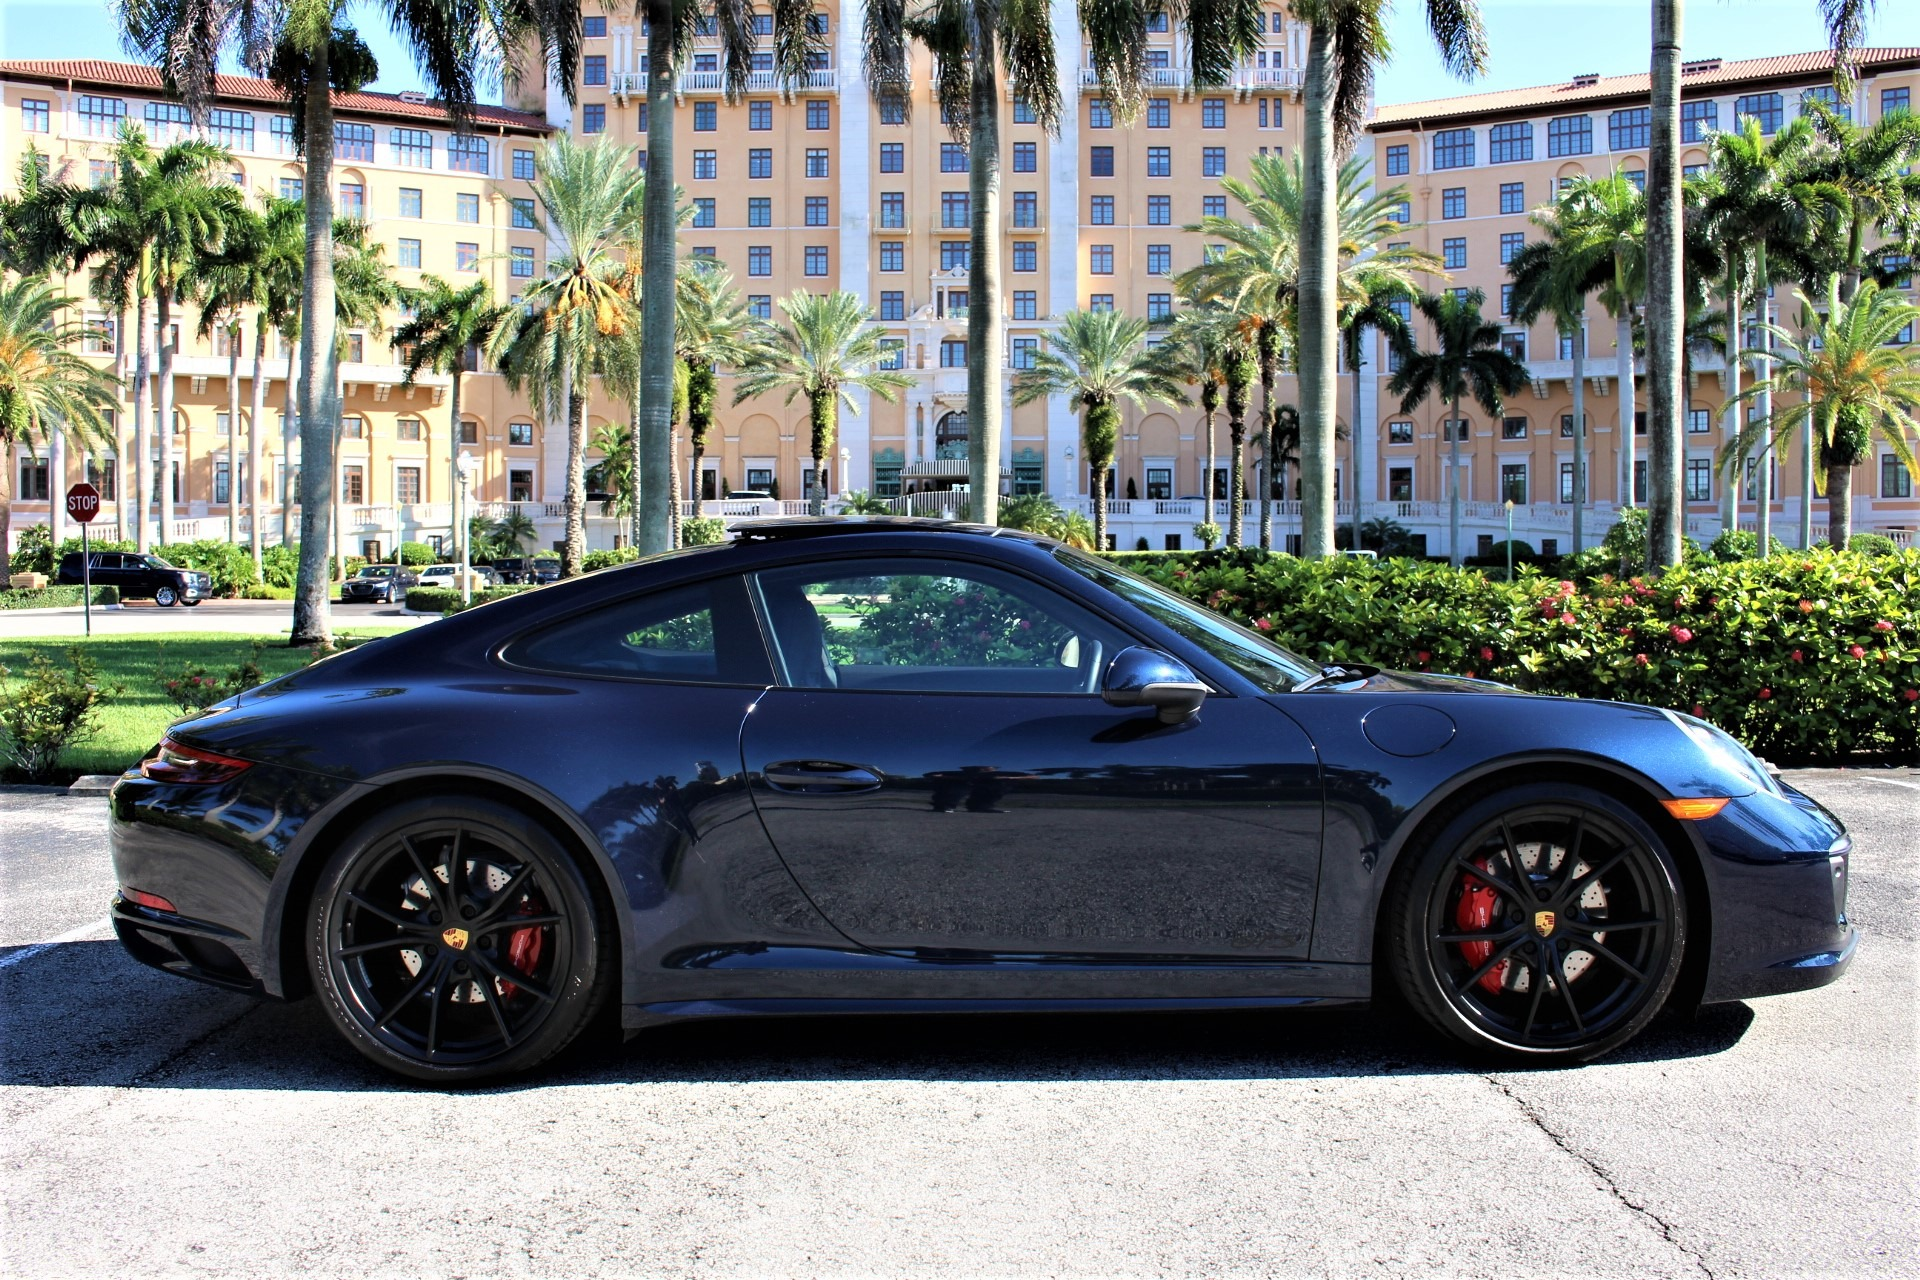 Used 2019 Porsche 911 Carrera GTS for sale Sold at The Gables Sports Cars in Miami FL 33146 1